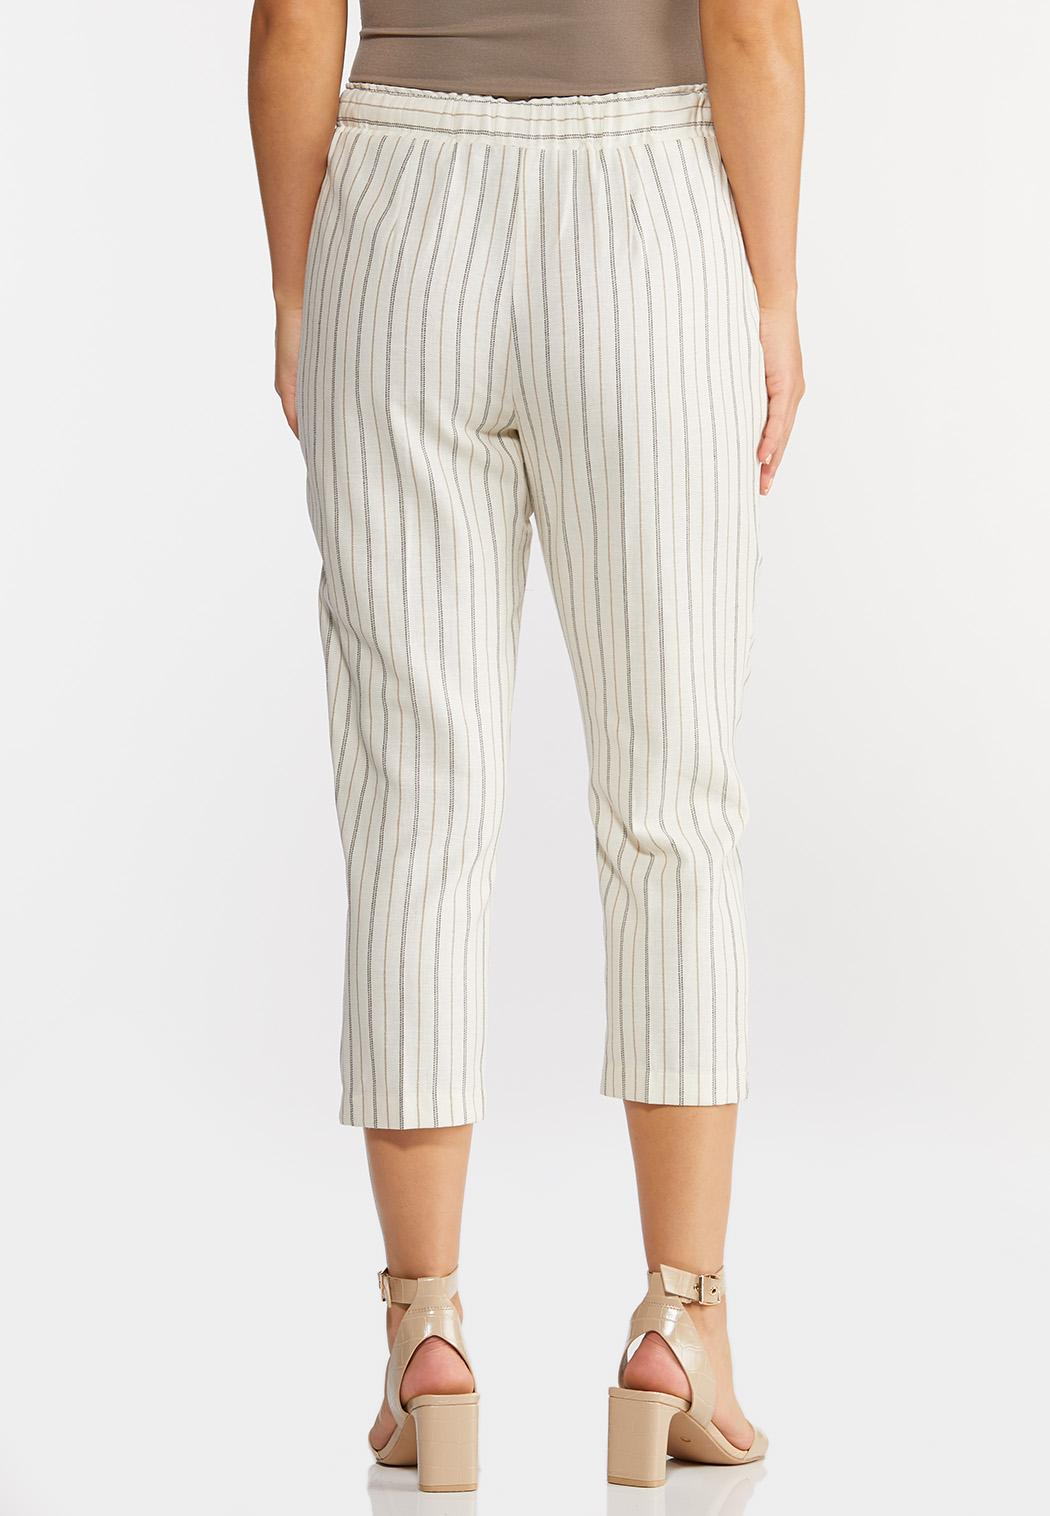 Cropped Striped Linen Pants (Item #44292535)